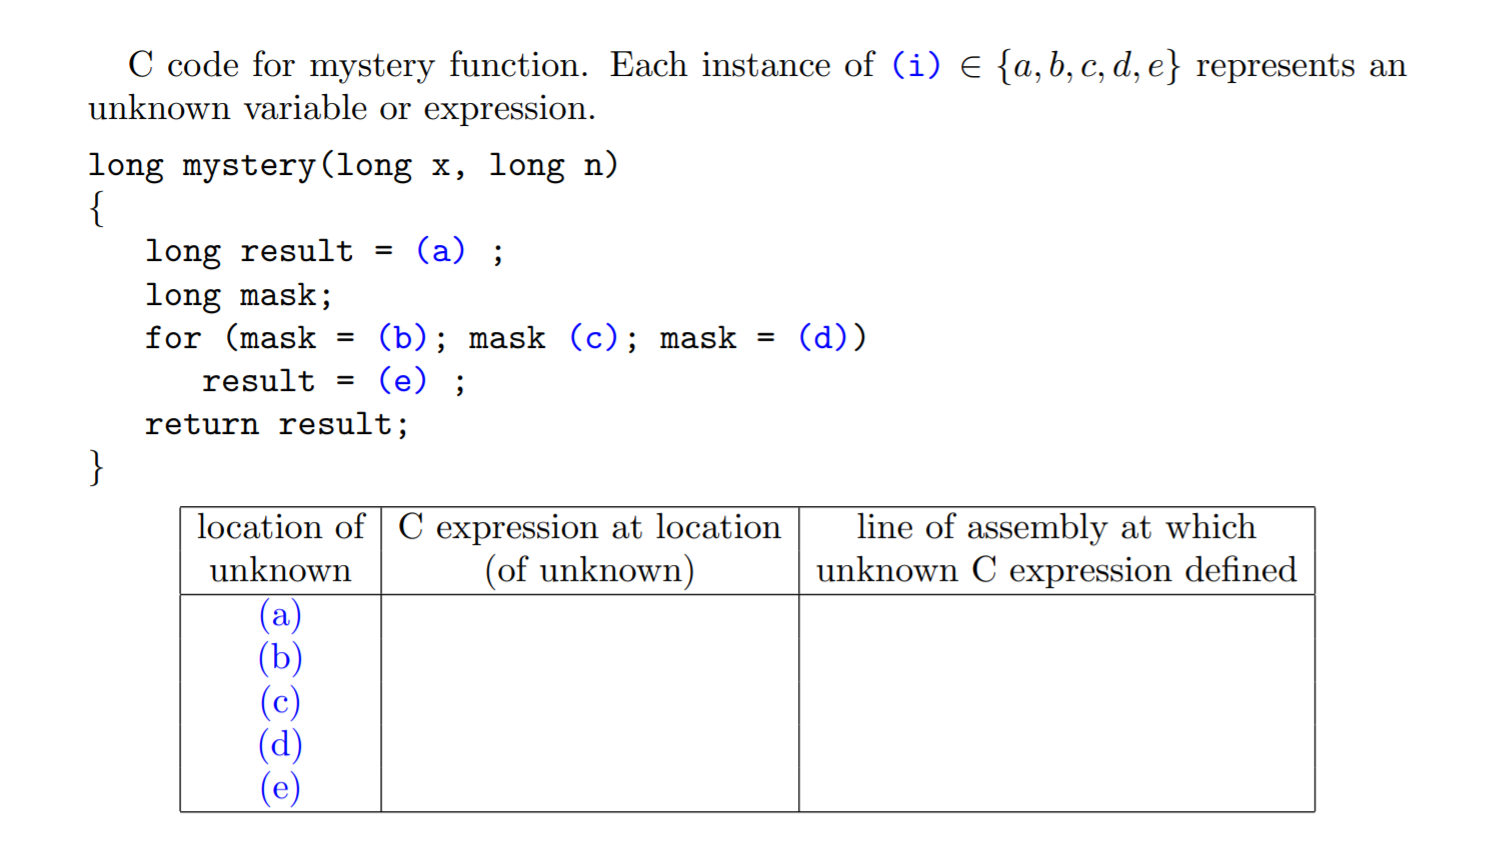 C code for mystery function. Each instance of (i) e {a,b,c, d, e} represents an unknown variable or expression. long mystery